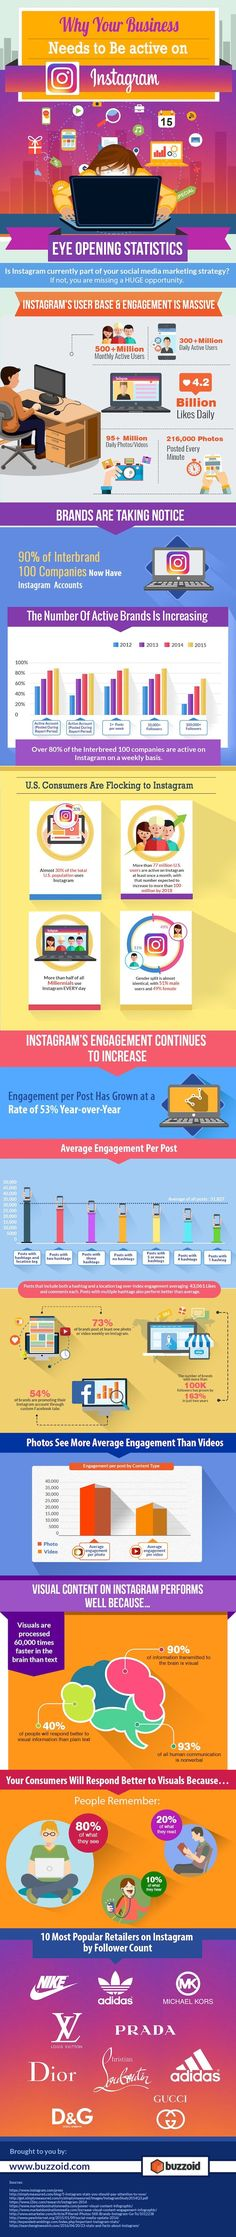 e4ae13b24 22 Stats That Show Why Your Business Should Be Active on  Instagram   Infographic